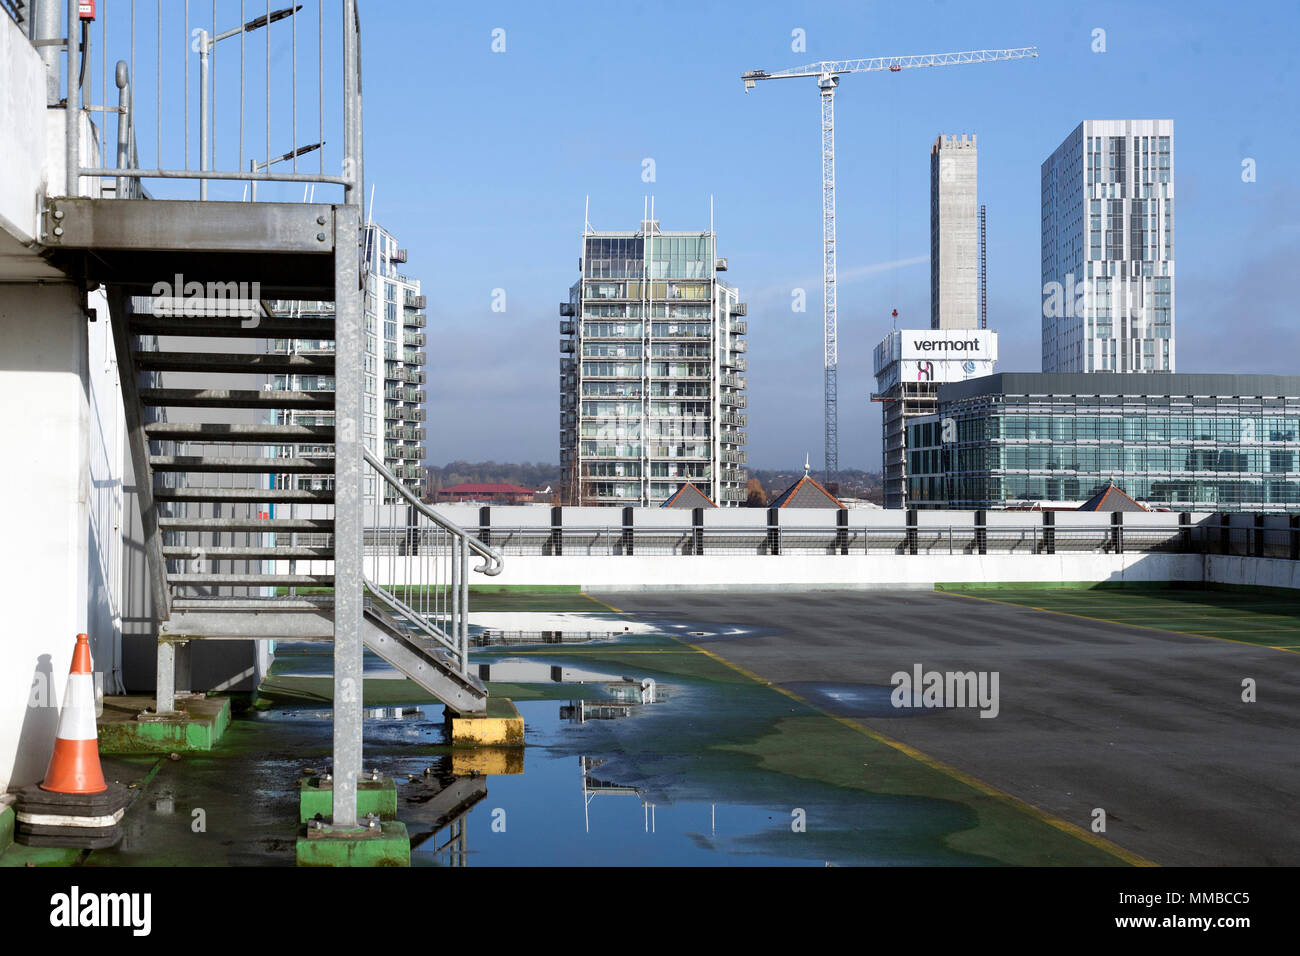 Salfrord Quays from the Top of Multistorey Car Park - Stock Image